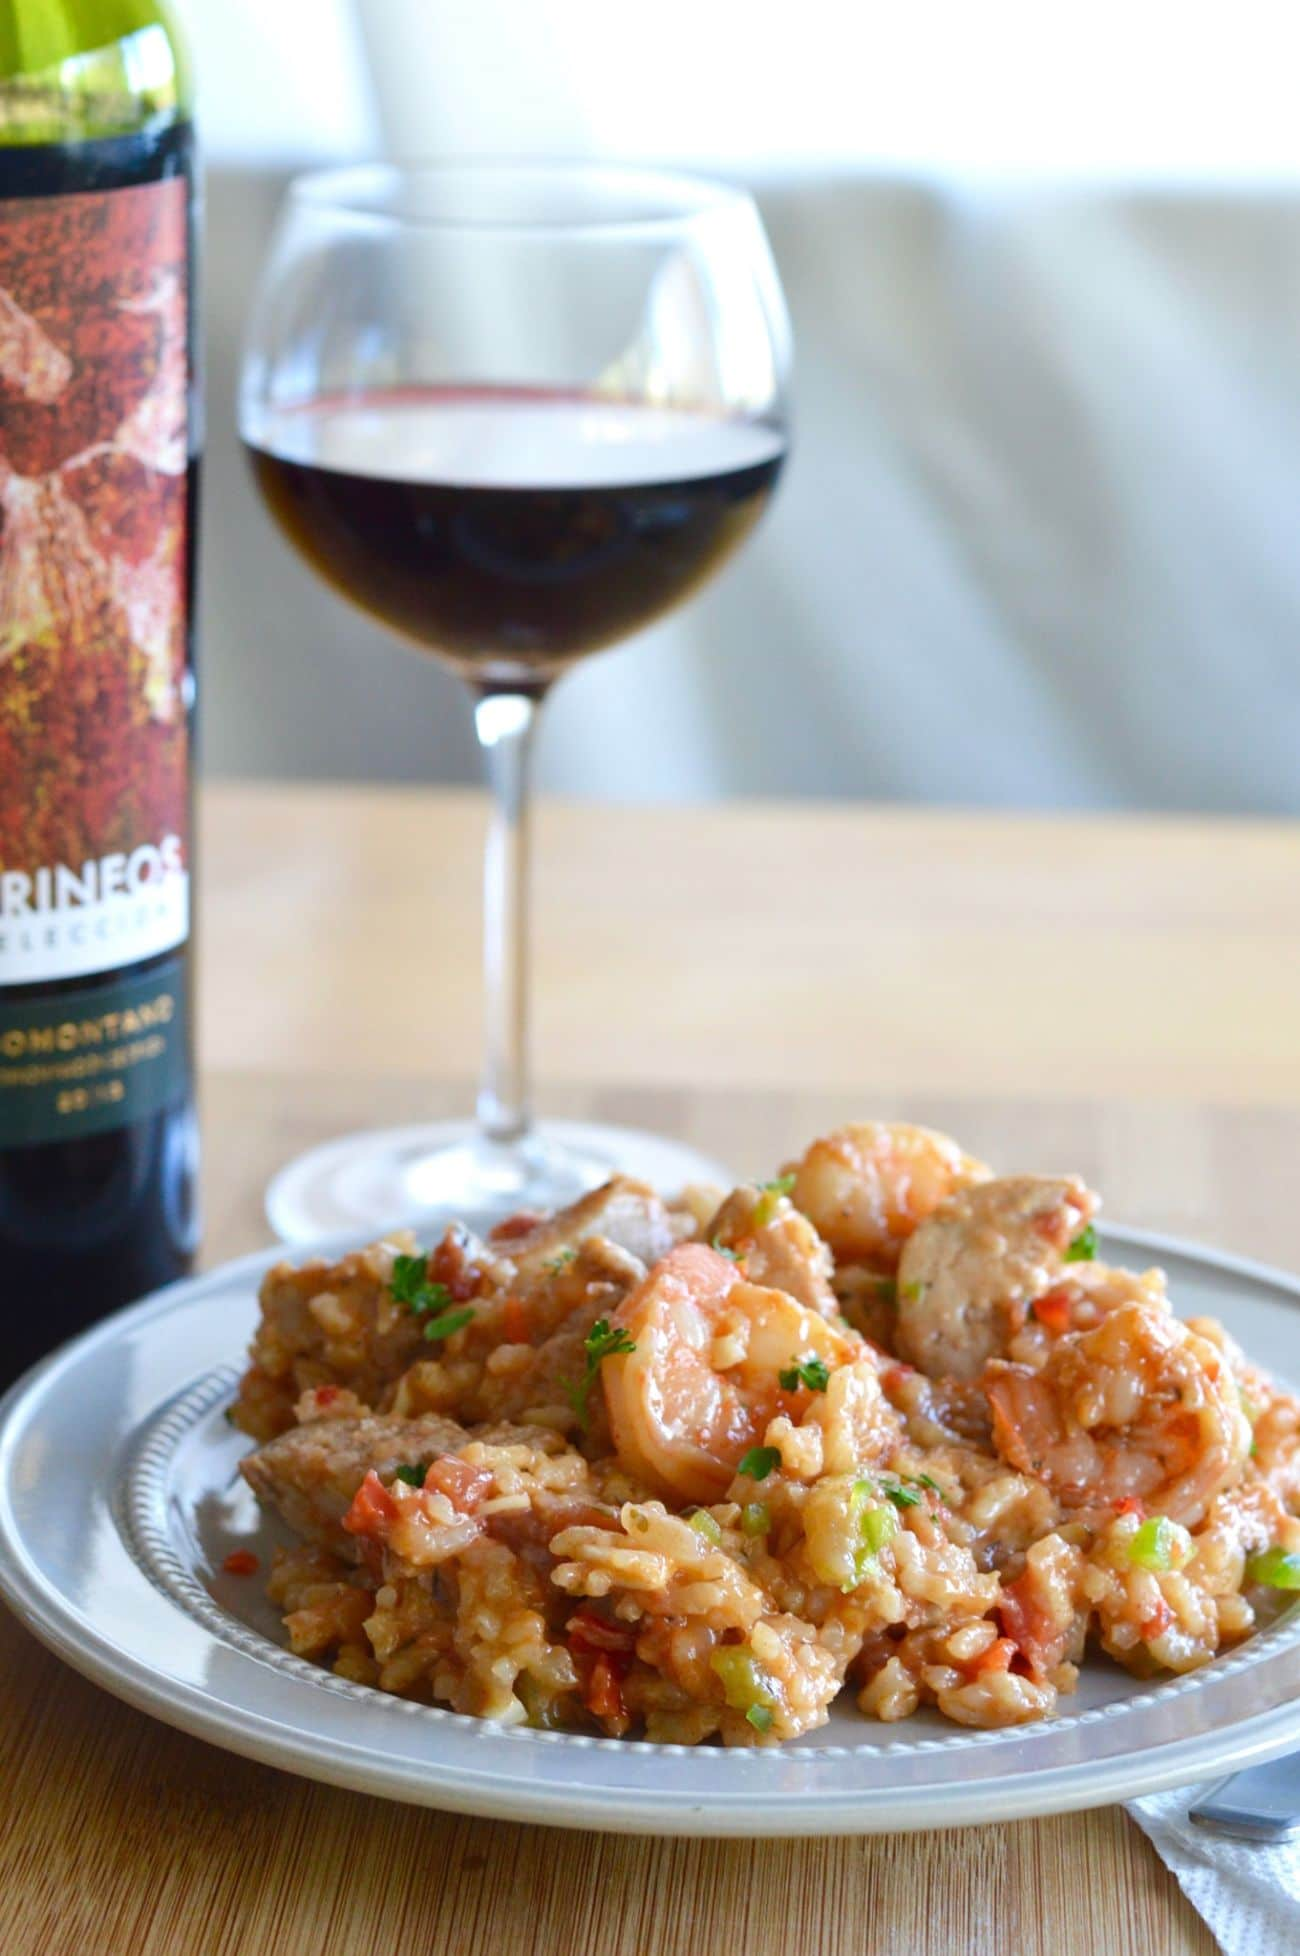 Easy one pot smoky jambalaya west via midwest this one pot smoky jambalaya is great for any get together when you are looking for forumfinder Images